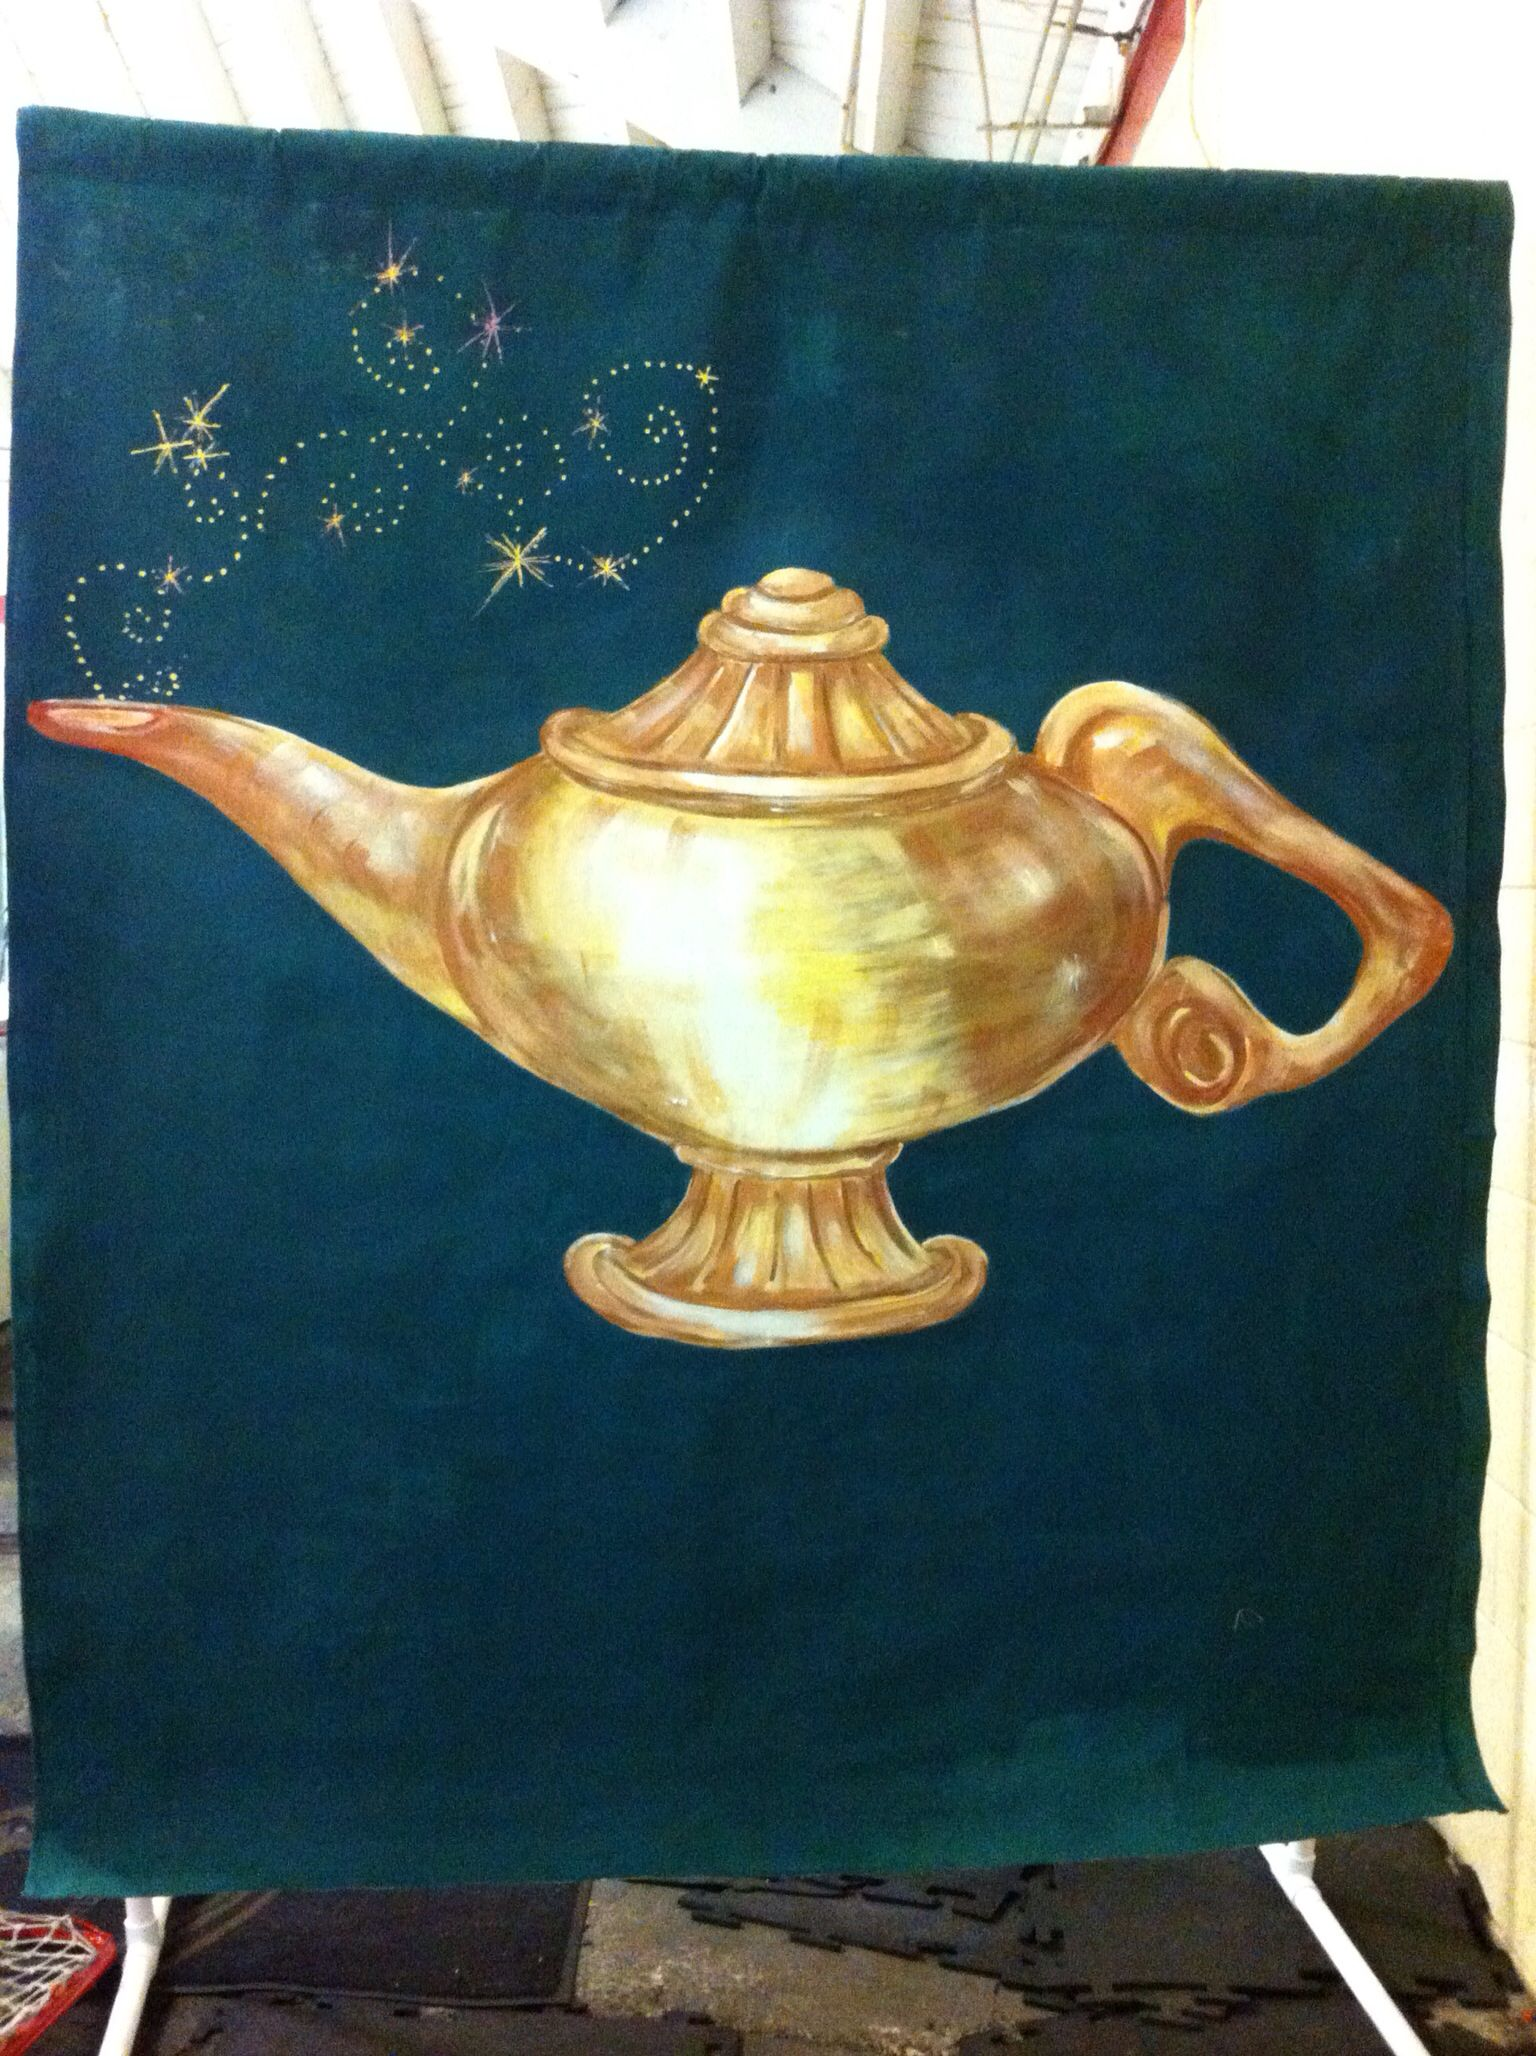 Genie Lamp step by step drawing tutorial | Aladdin art